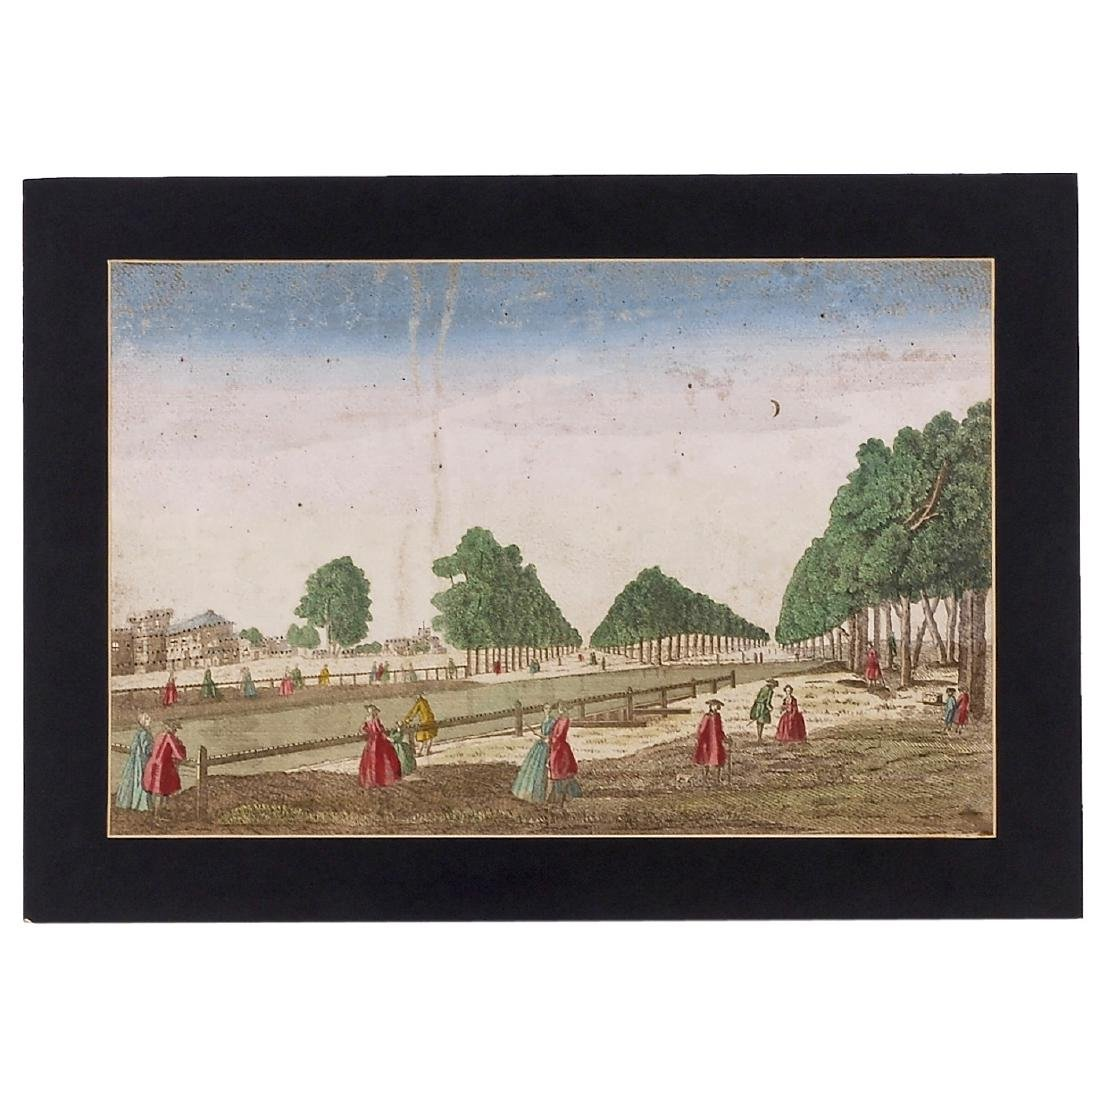 5 Day-and-Night Vues d'Optique, c. 1800-1850 - 3